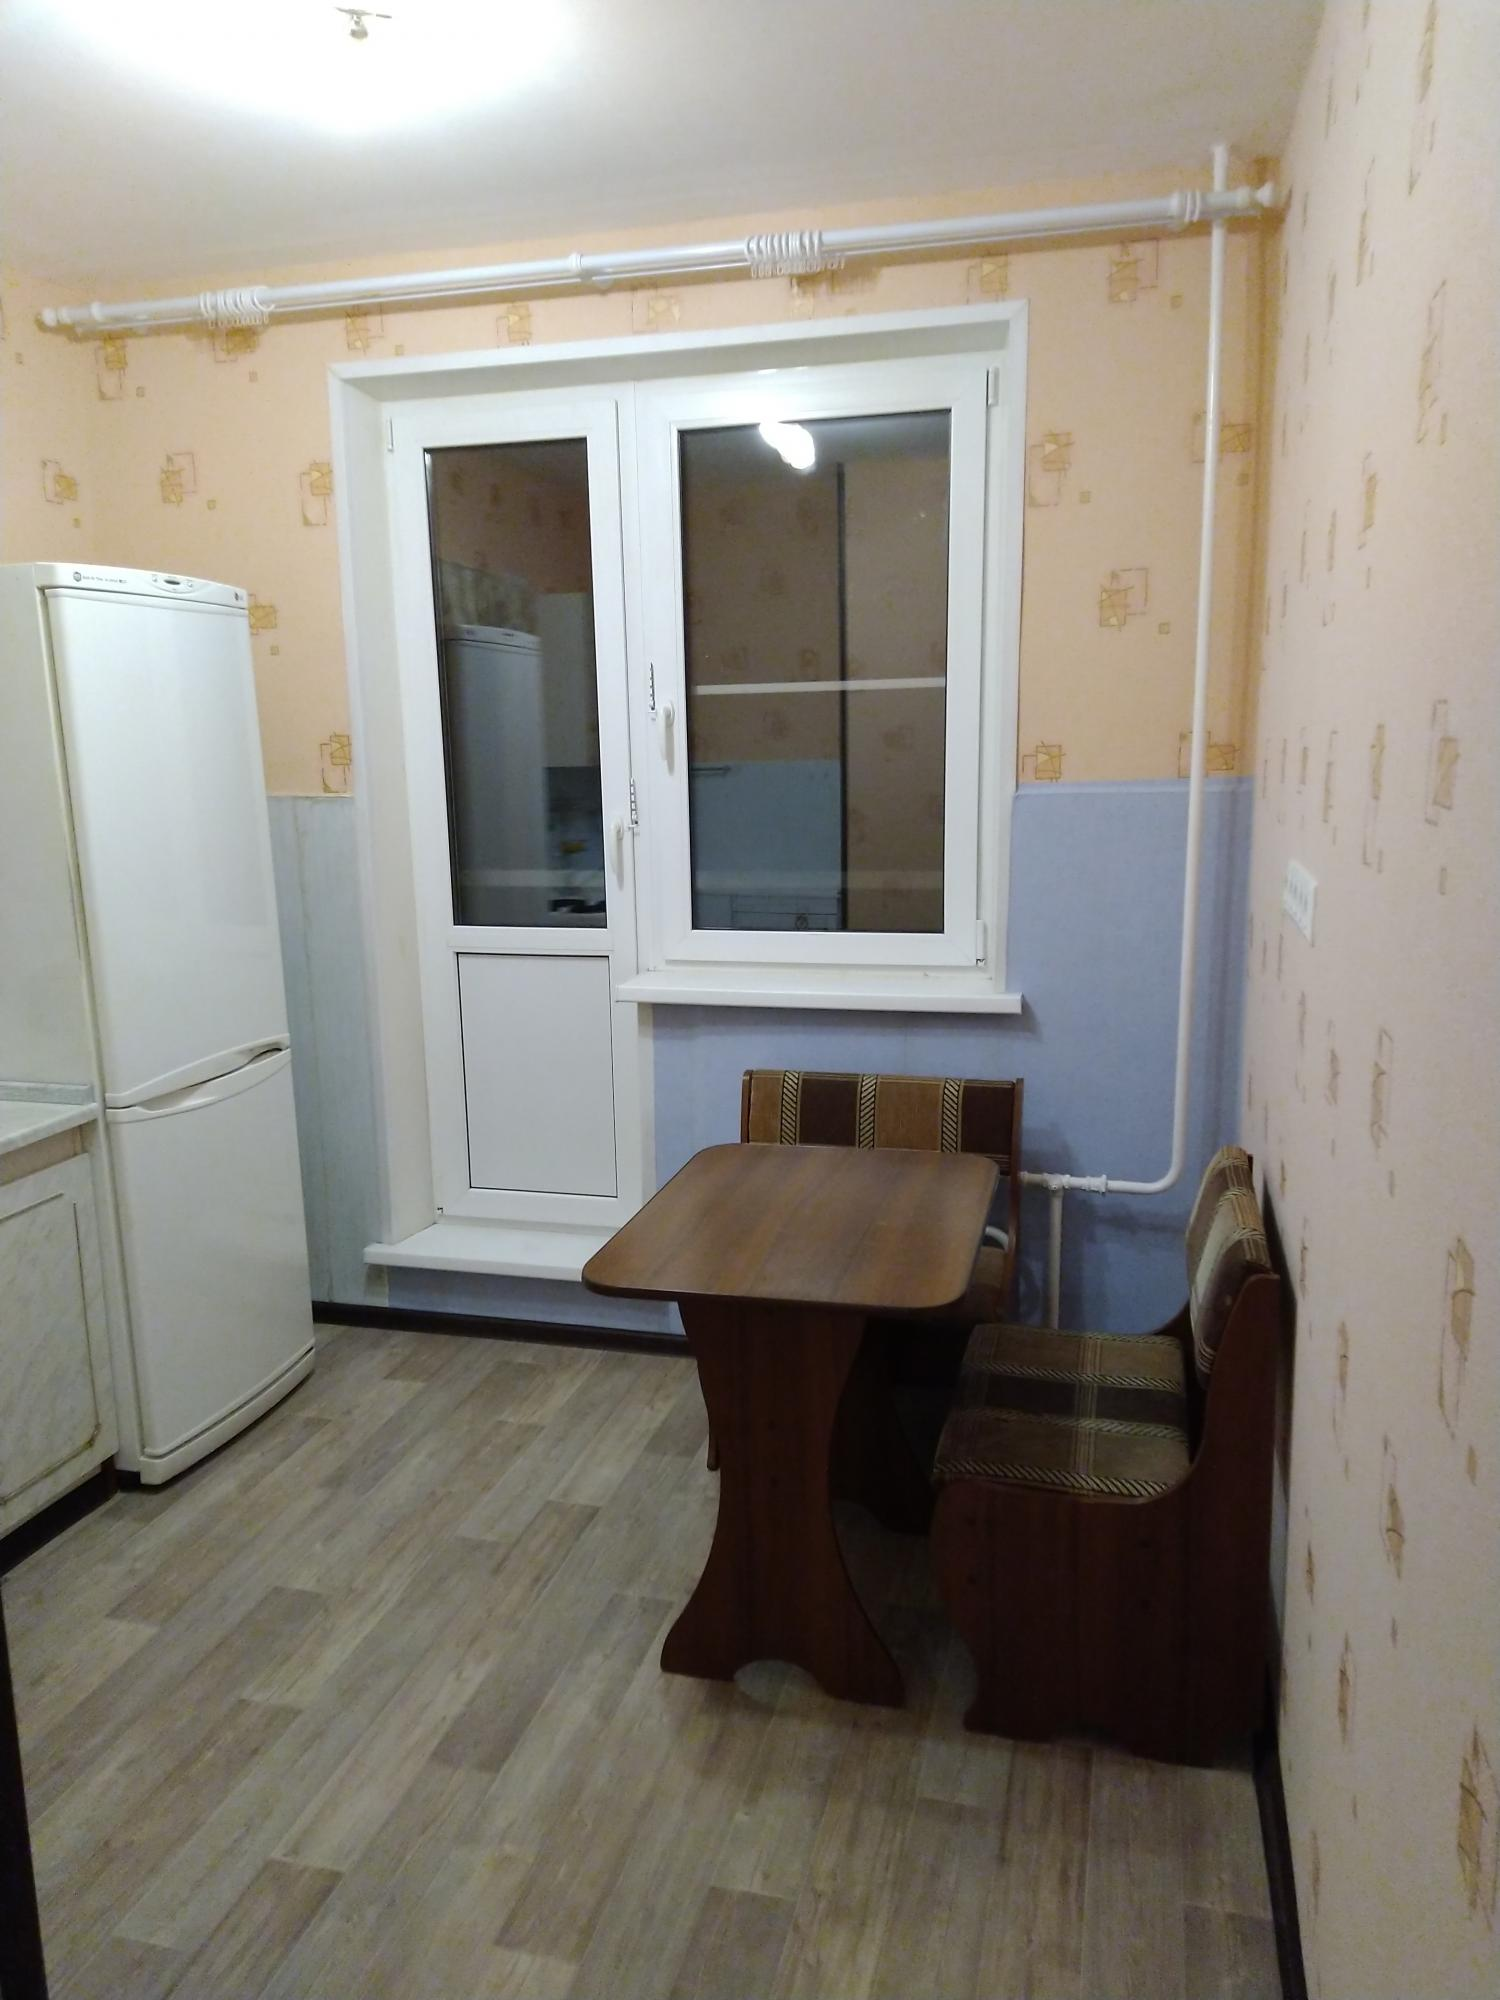 Apartment, 1 room, 41 m2 in Moscow 89629338809 buy 6